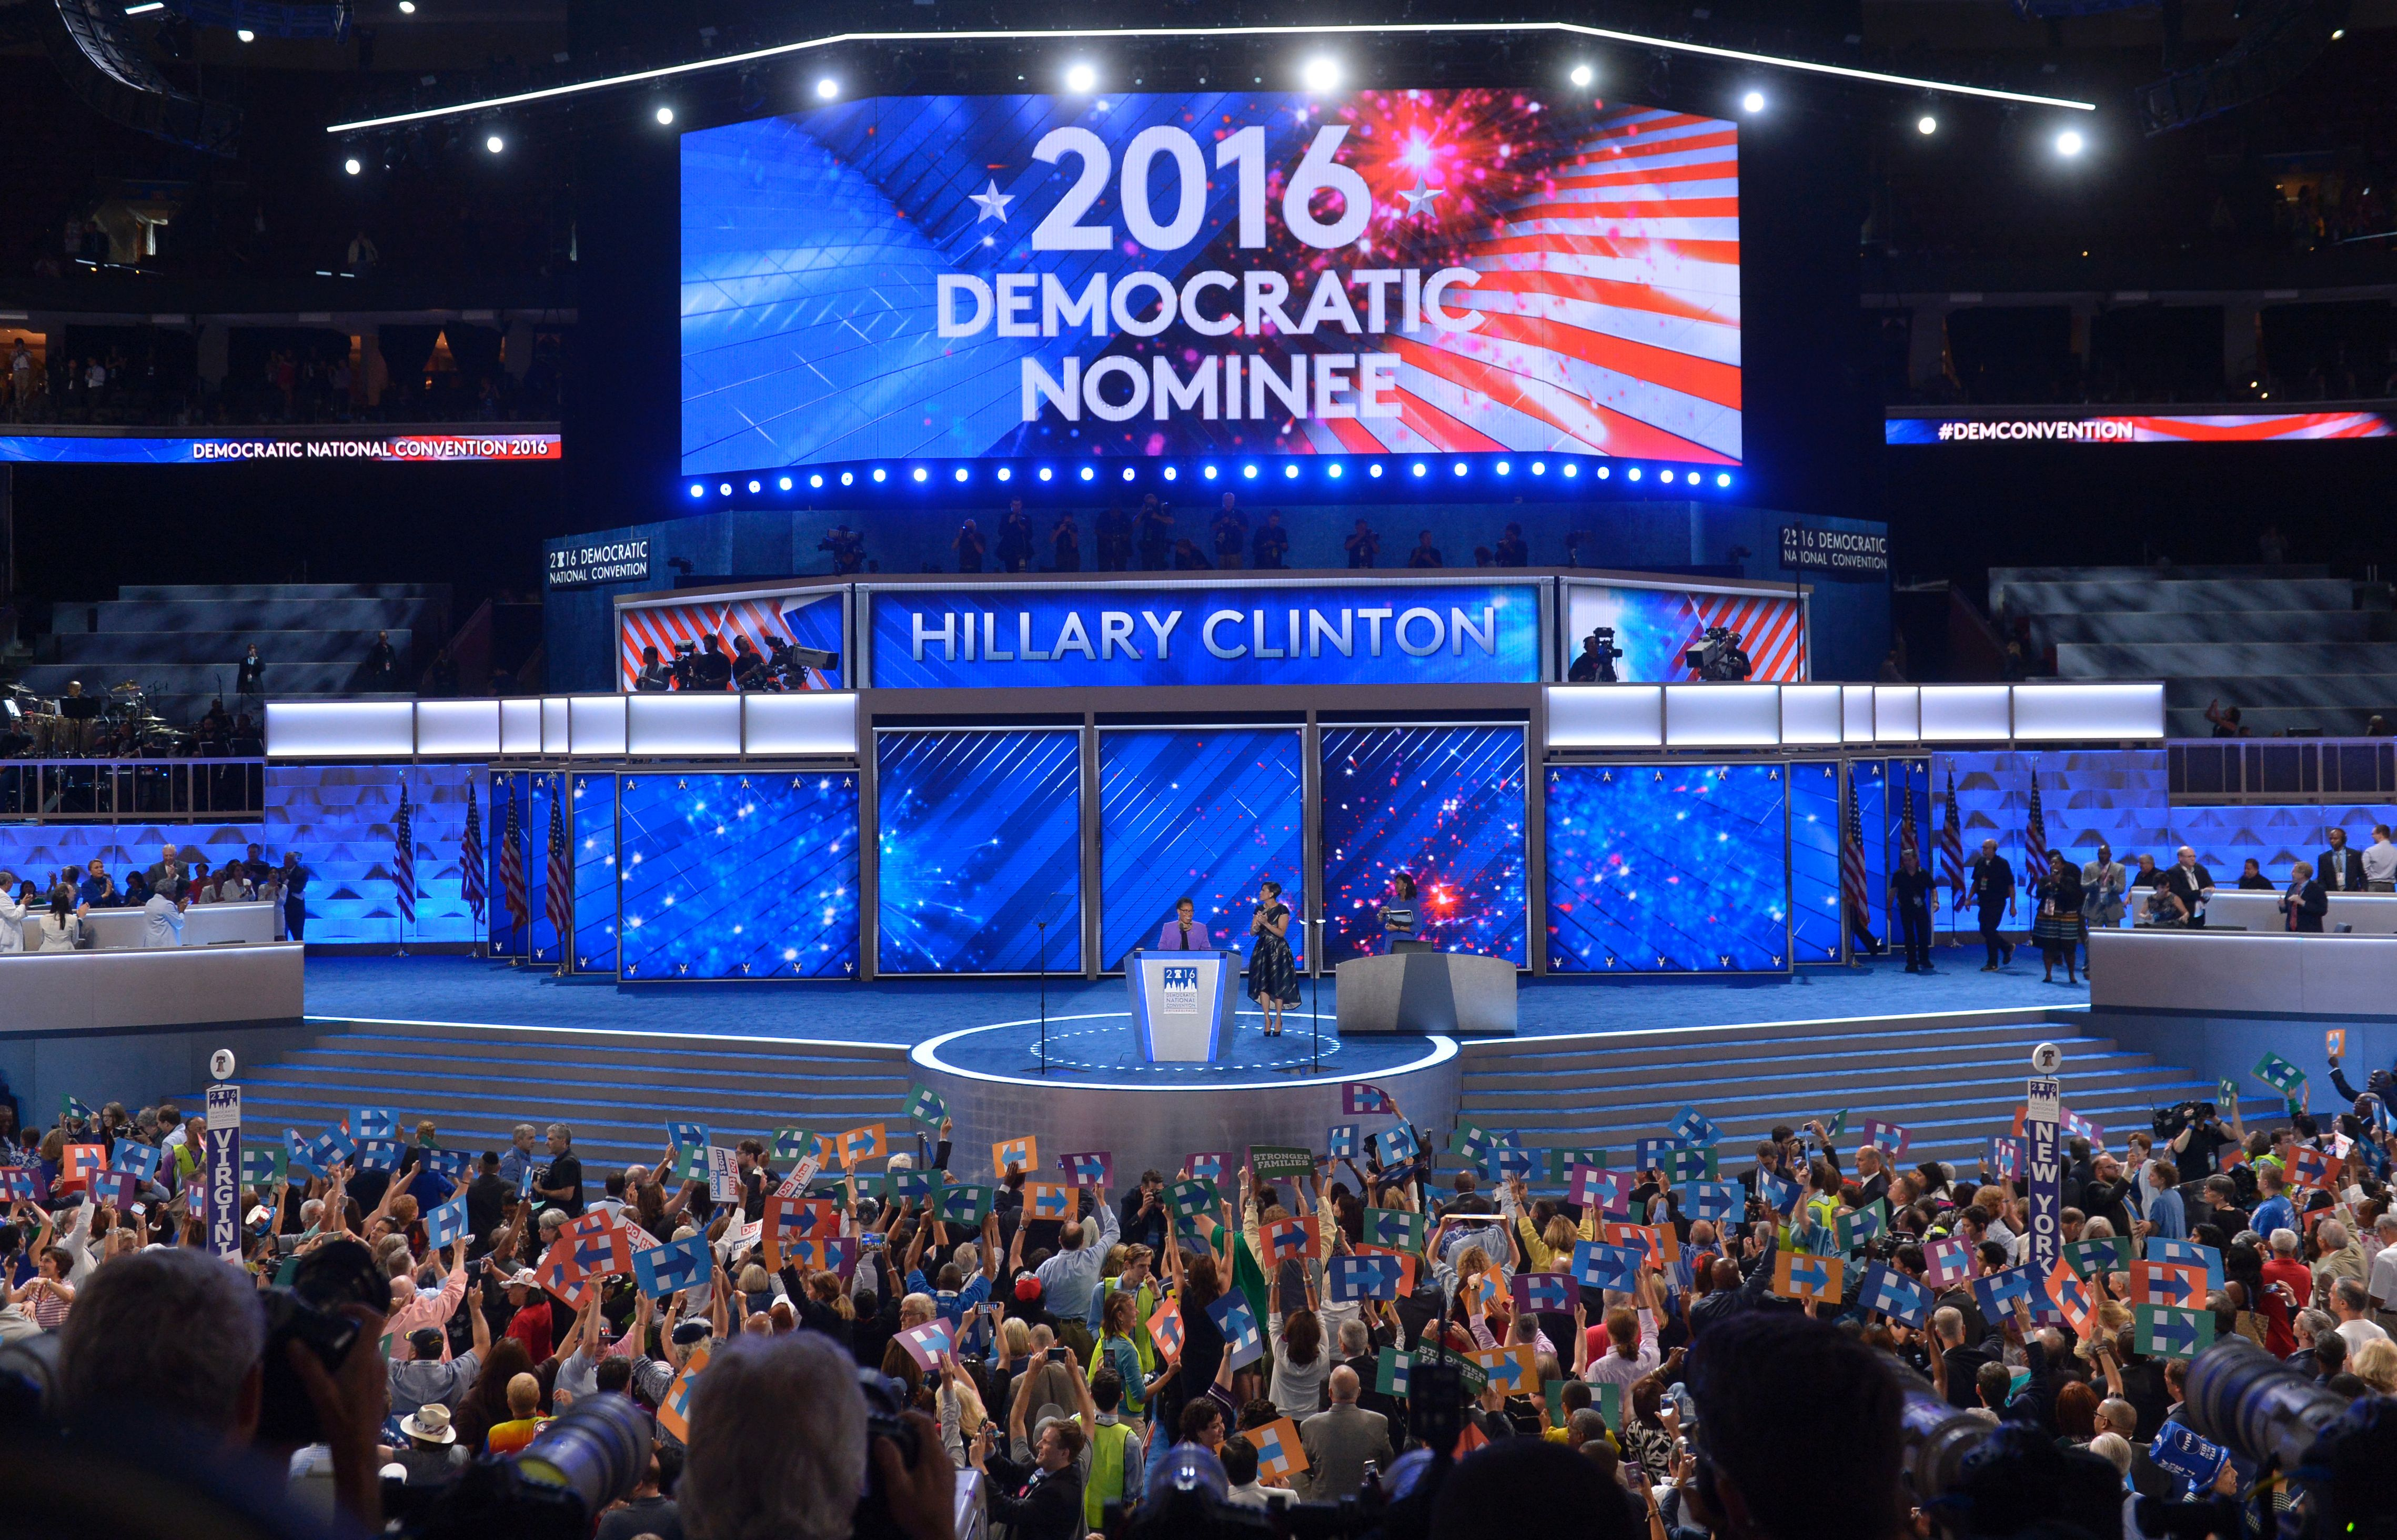 Hillary Clinton is announced as the Democratic Presidential nominee during Day 2 of the Democratic National Convention at the Wells Fargo Center in Philadelphia, Pennsylvania,